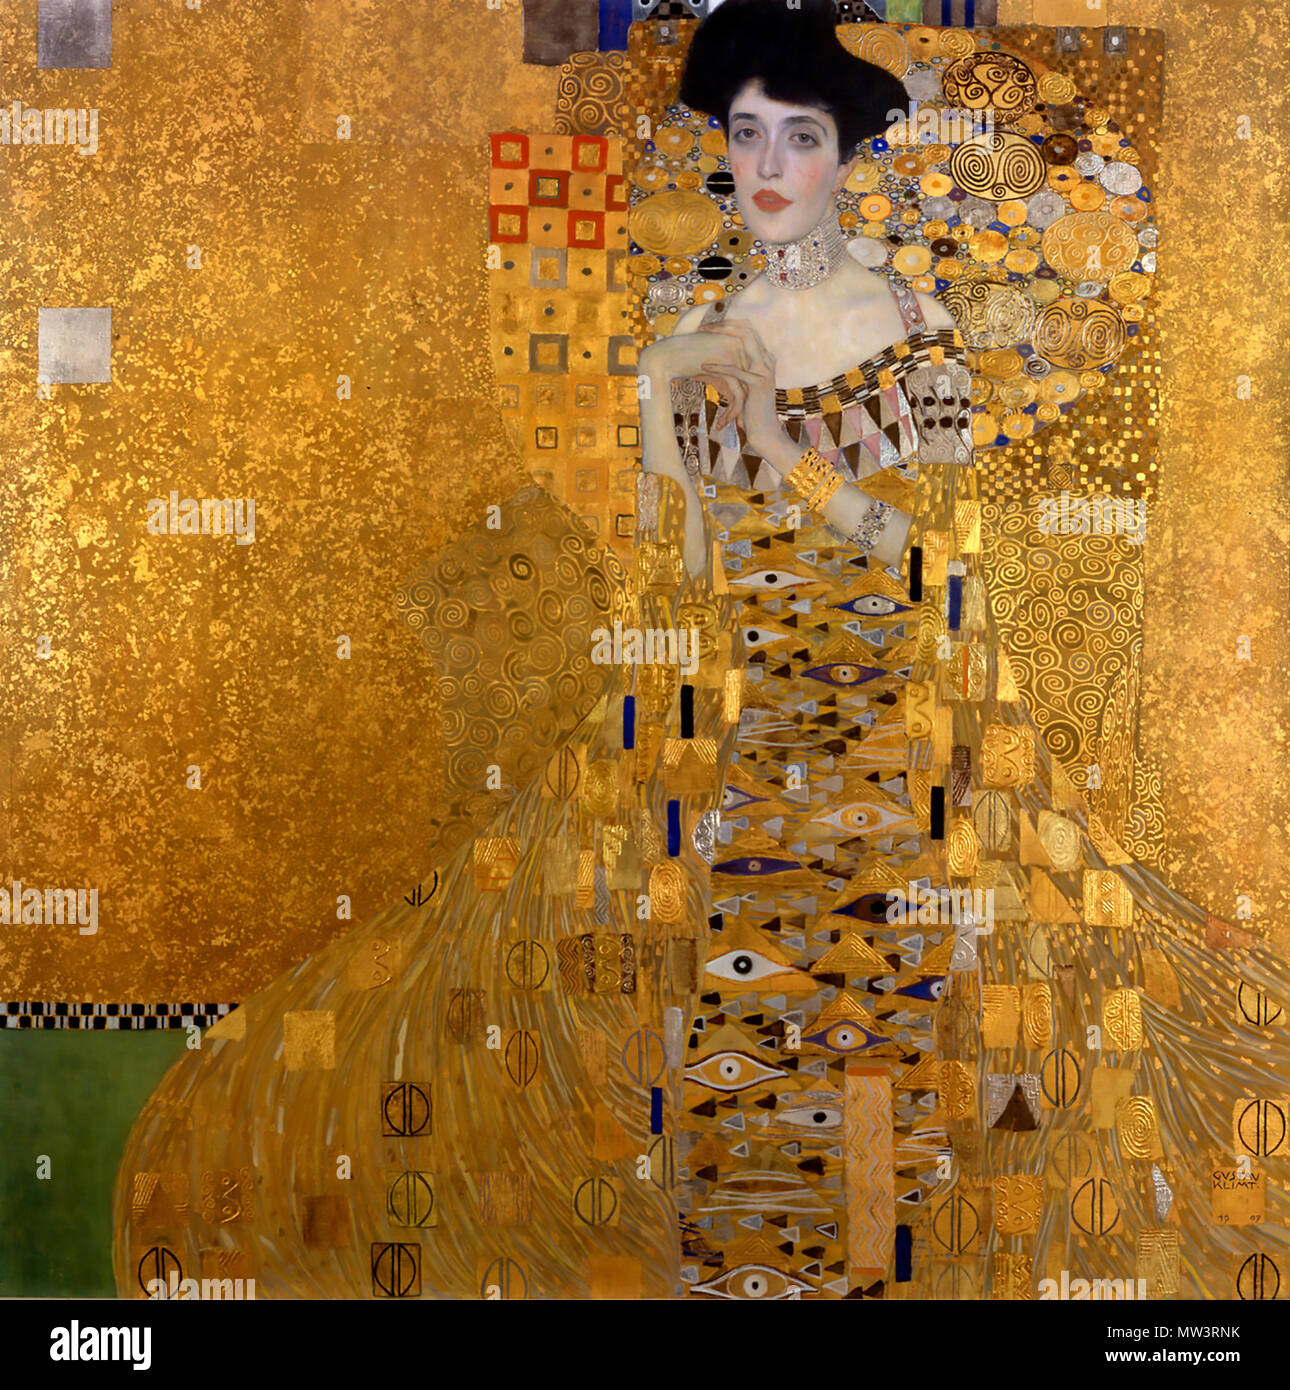 GUSTAV KLIMT (1862-1918) Austrian symbolist painter. His 1907 portrait 'Adele Bloch-Bauer' which sold for £35million at the Neue Galerie, New York, in 2006. - Stock Image